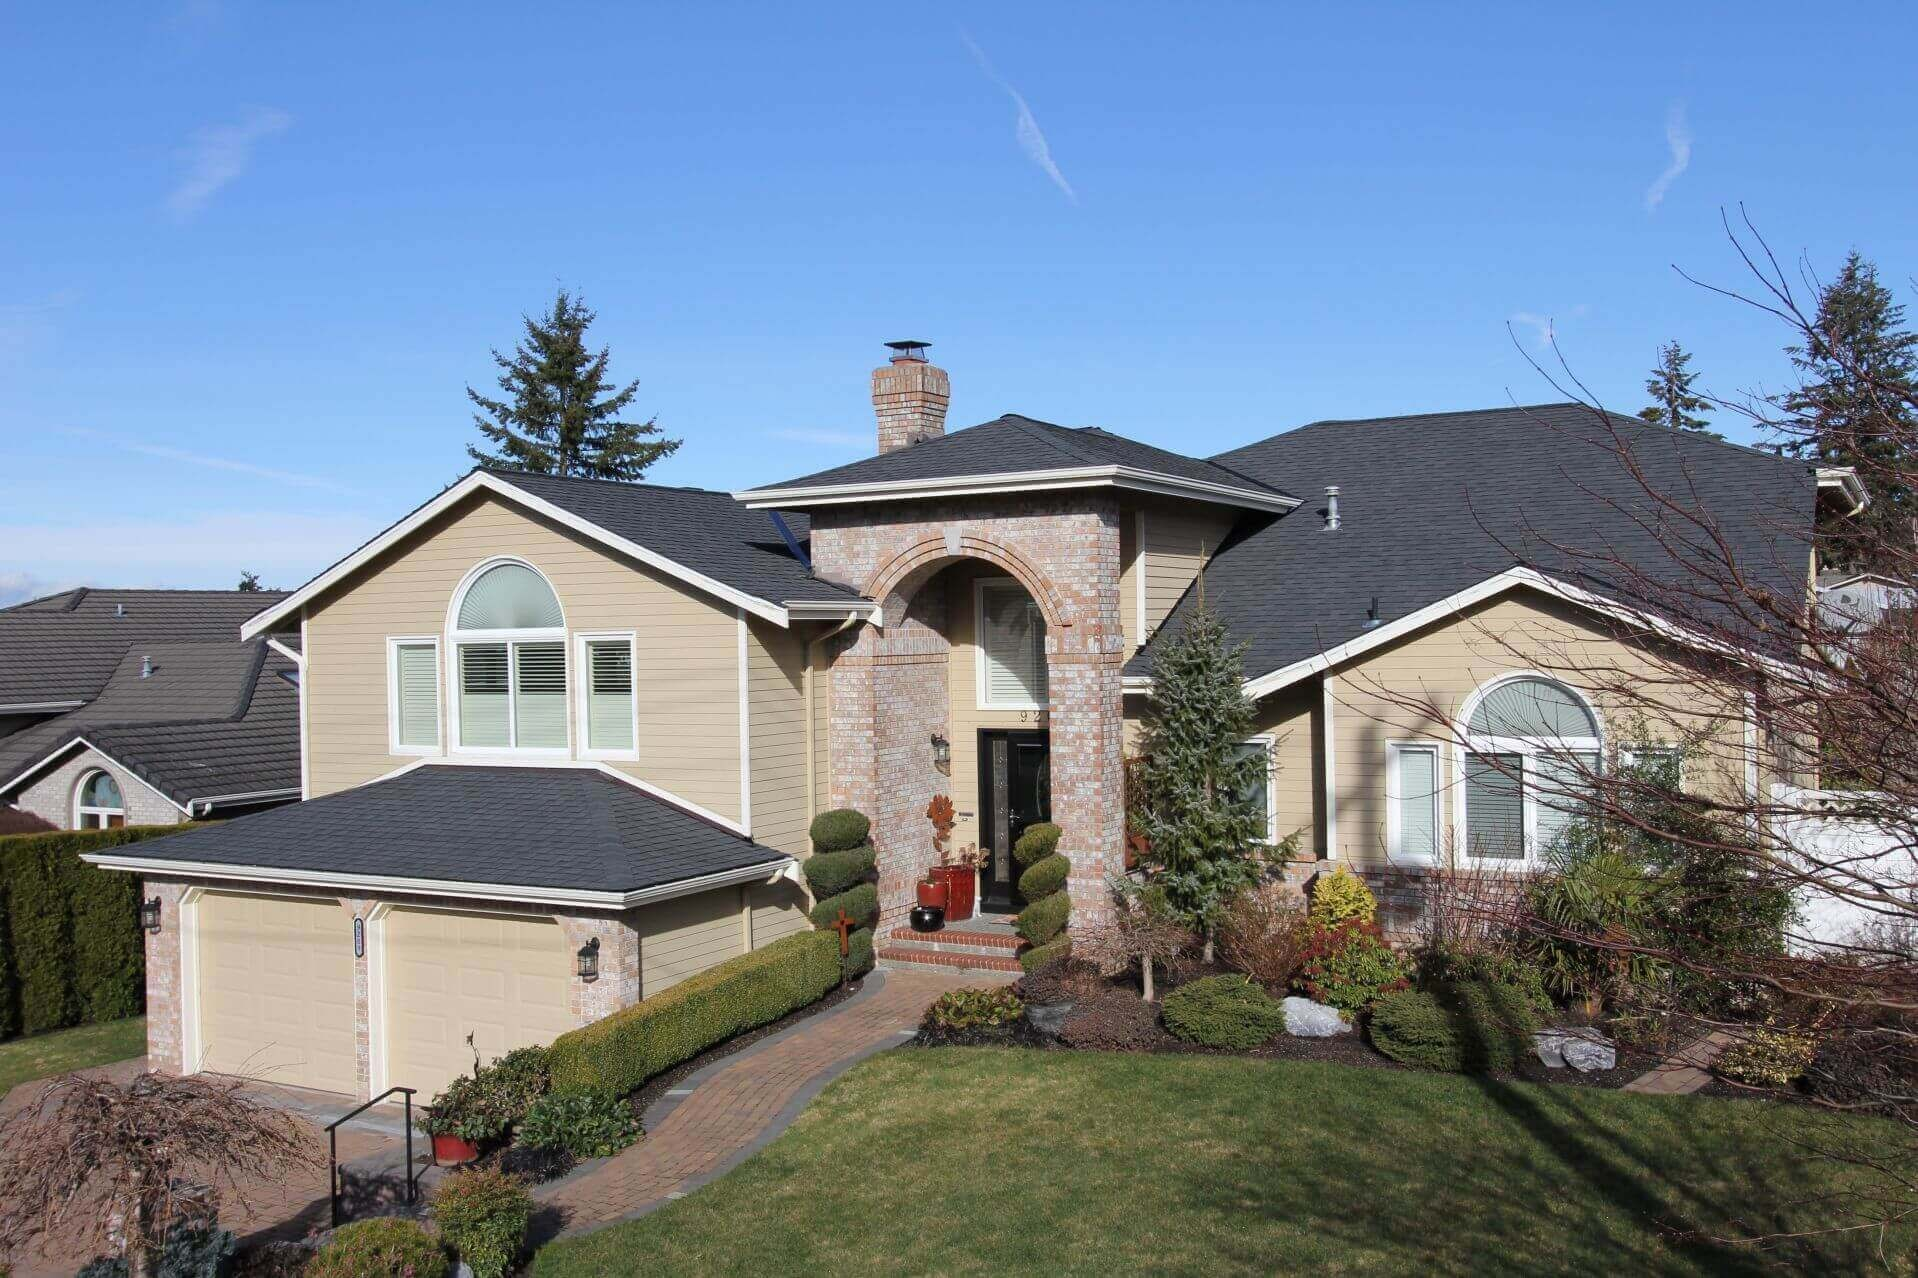 Roofer Edmonds. 45 Years - Leading Licensed Local Company. Commercial & Residential Roofers. Master Certified. Repair Shingles, Flashing, Damage & New Replacements. Emergency Services.